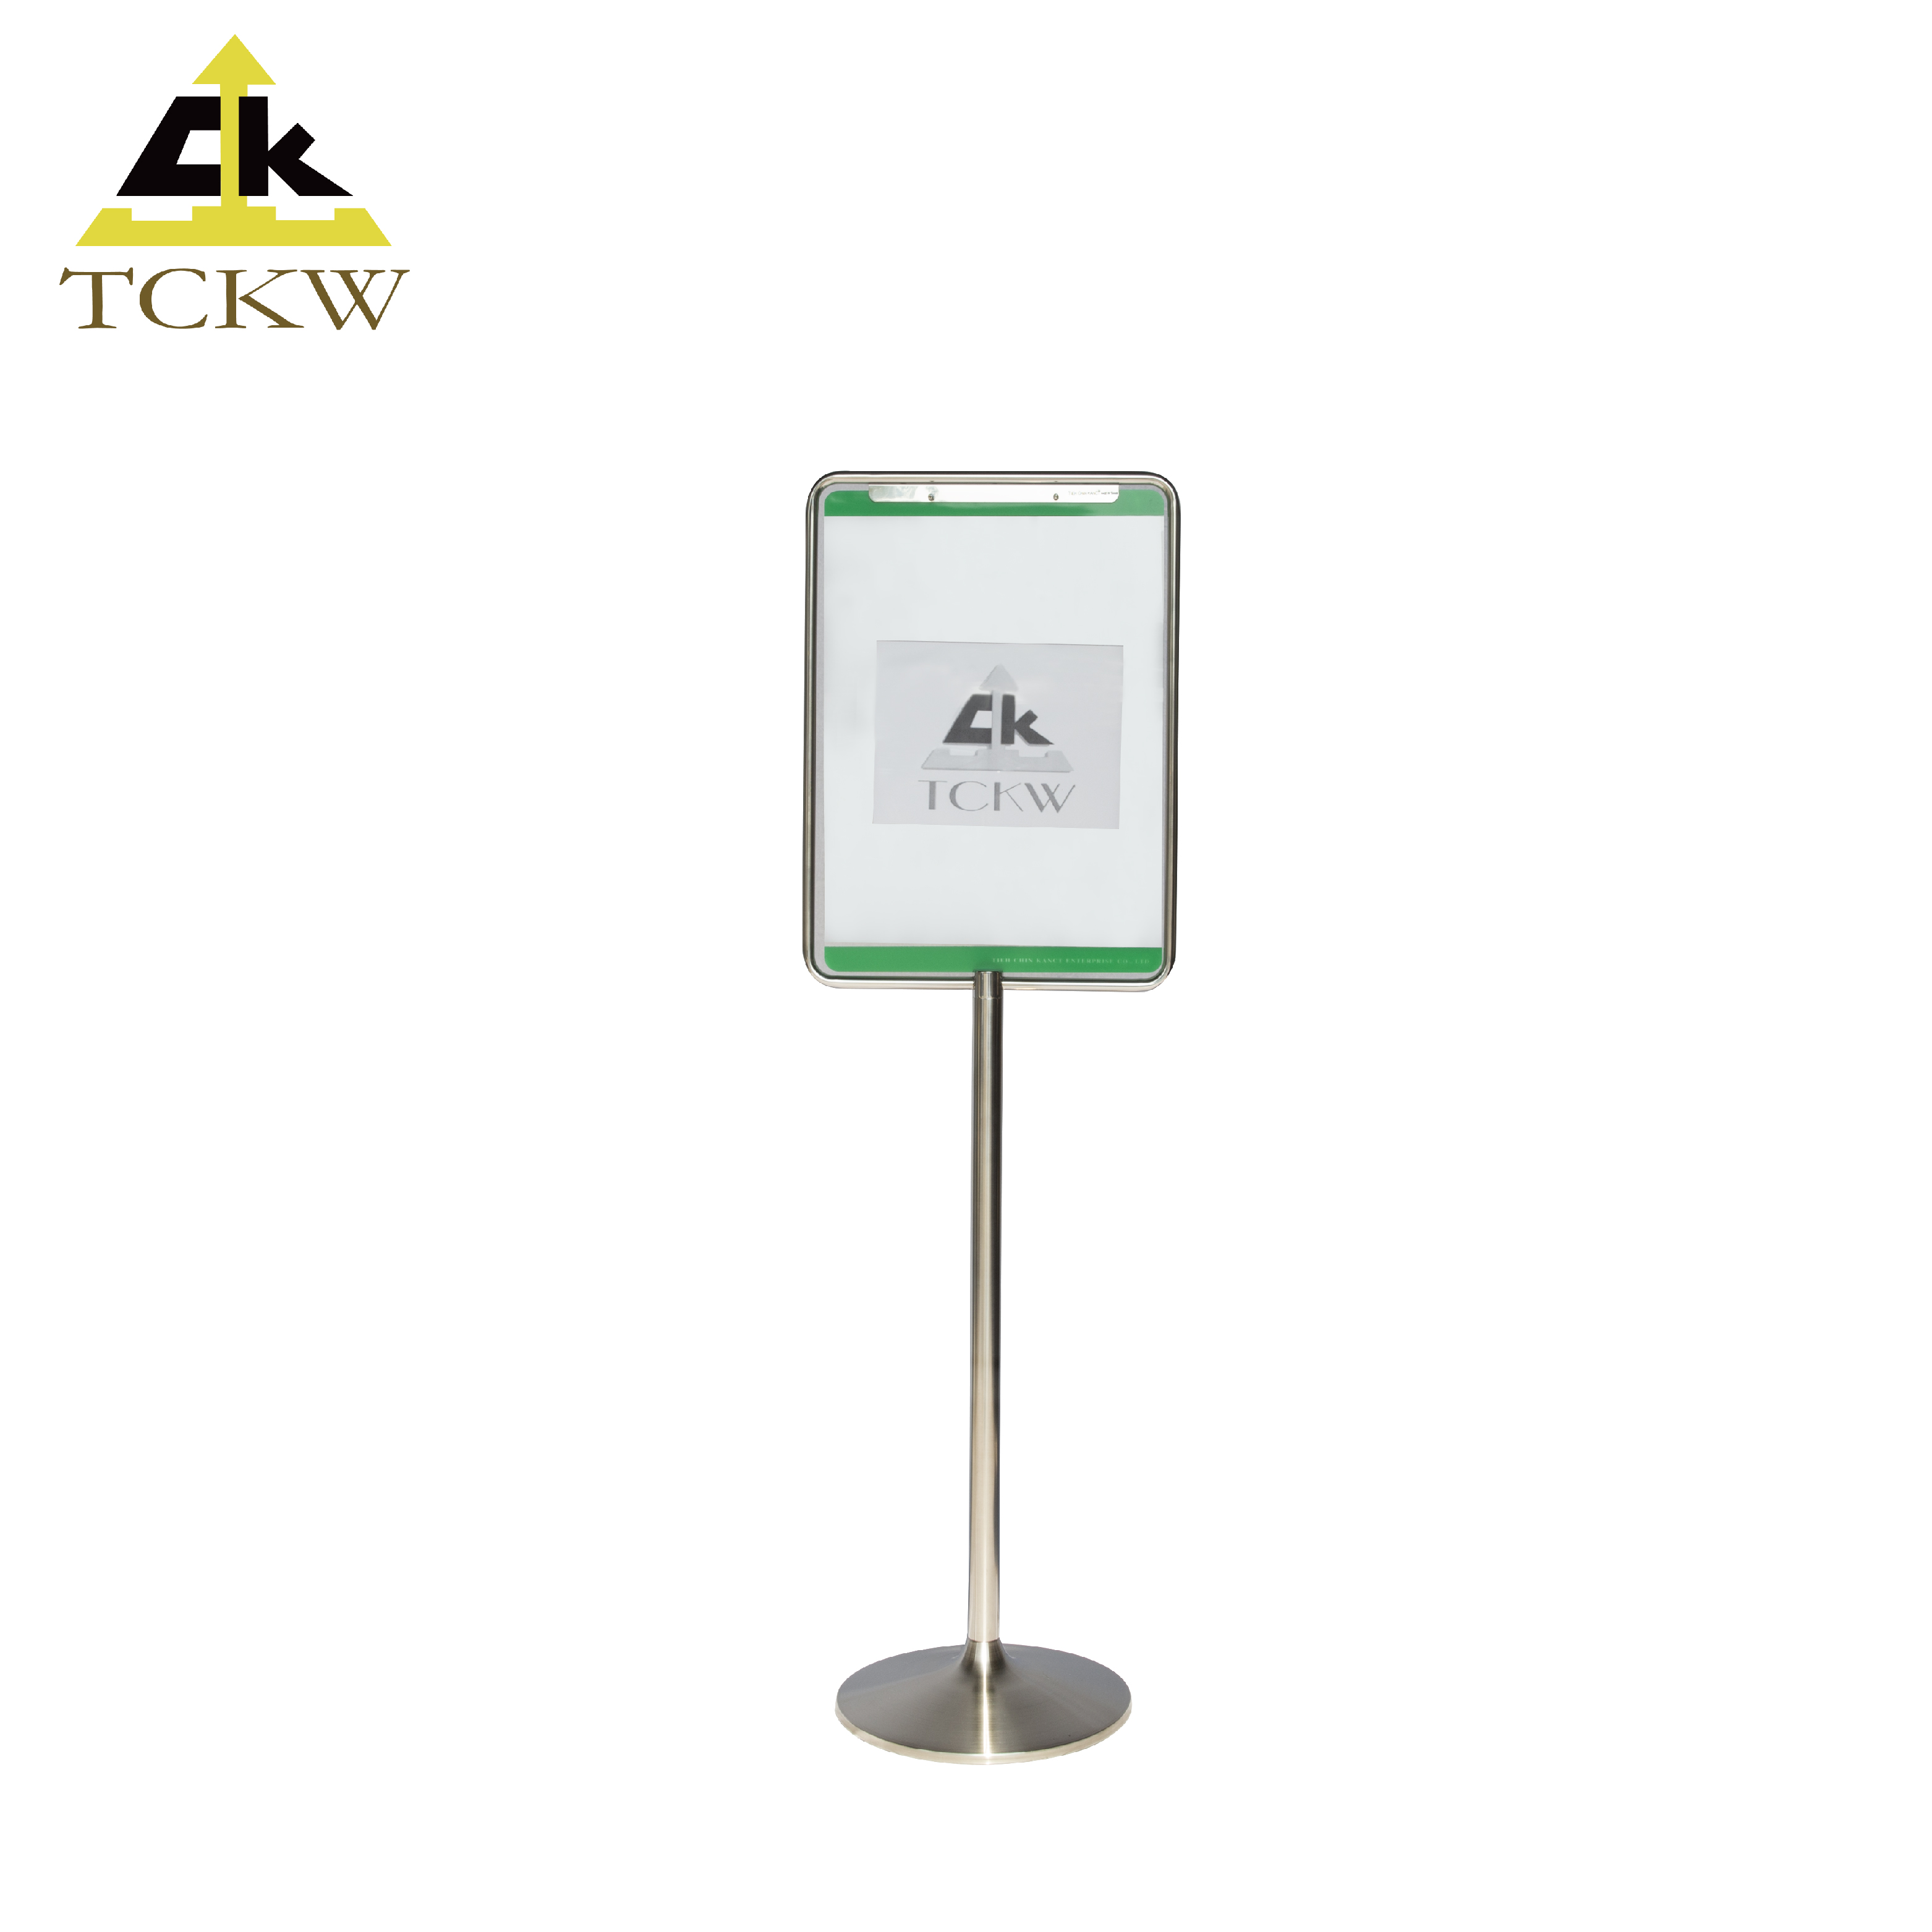 Card Holder & Note Holder Office & School Supplies A5 Acrylic Price Tag Display Stand Plastic Menu Stand Frame Picture Holder Advertising Menu Poster Display Rack Desk Sign Holder Price Remains Stable